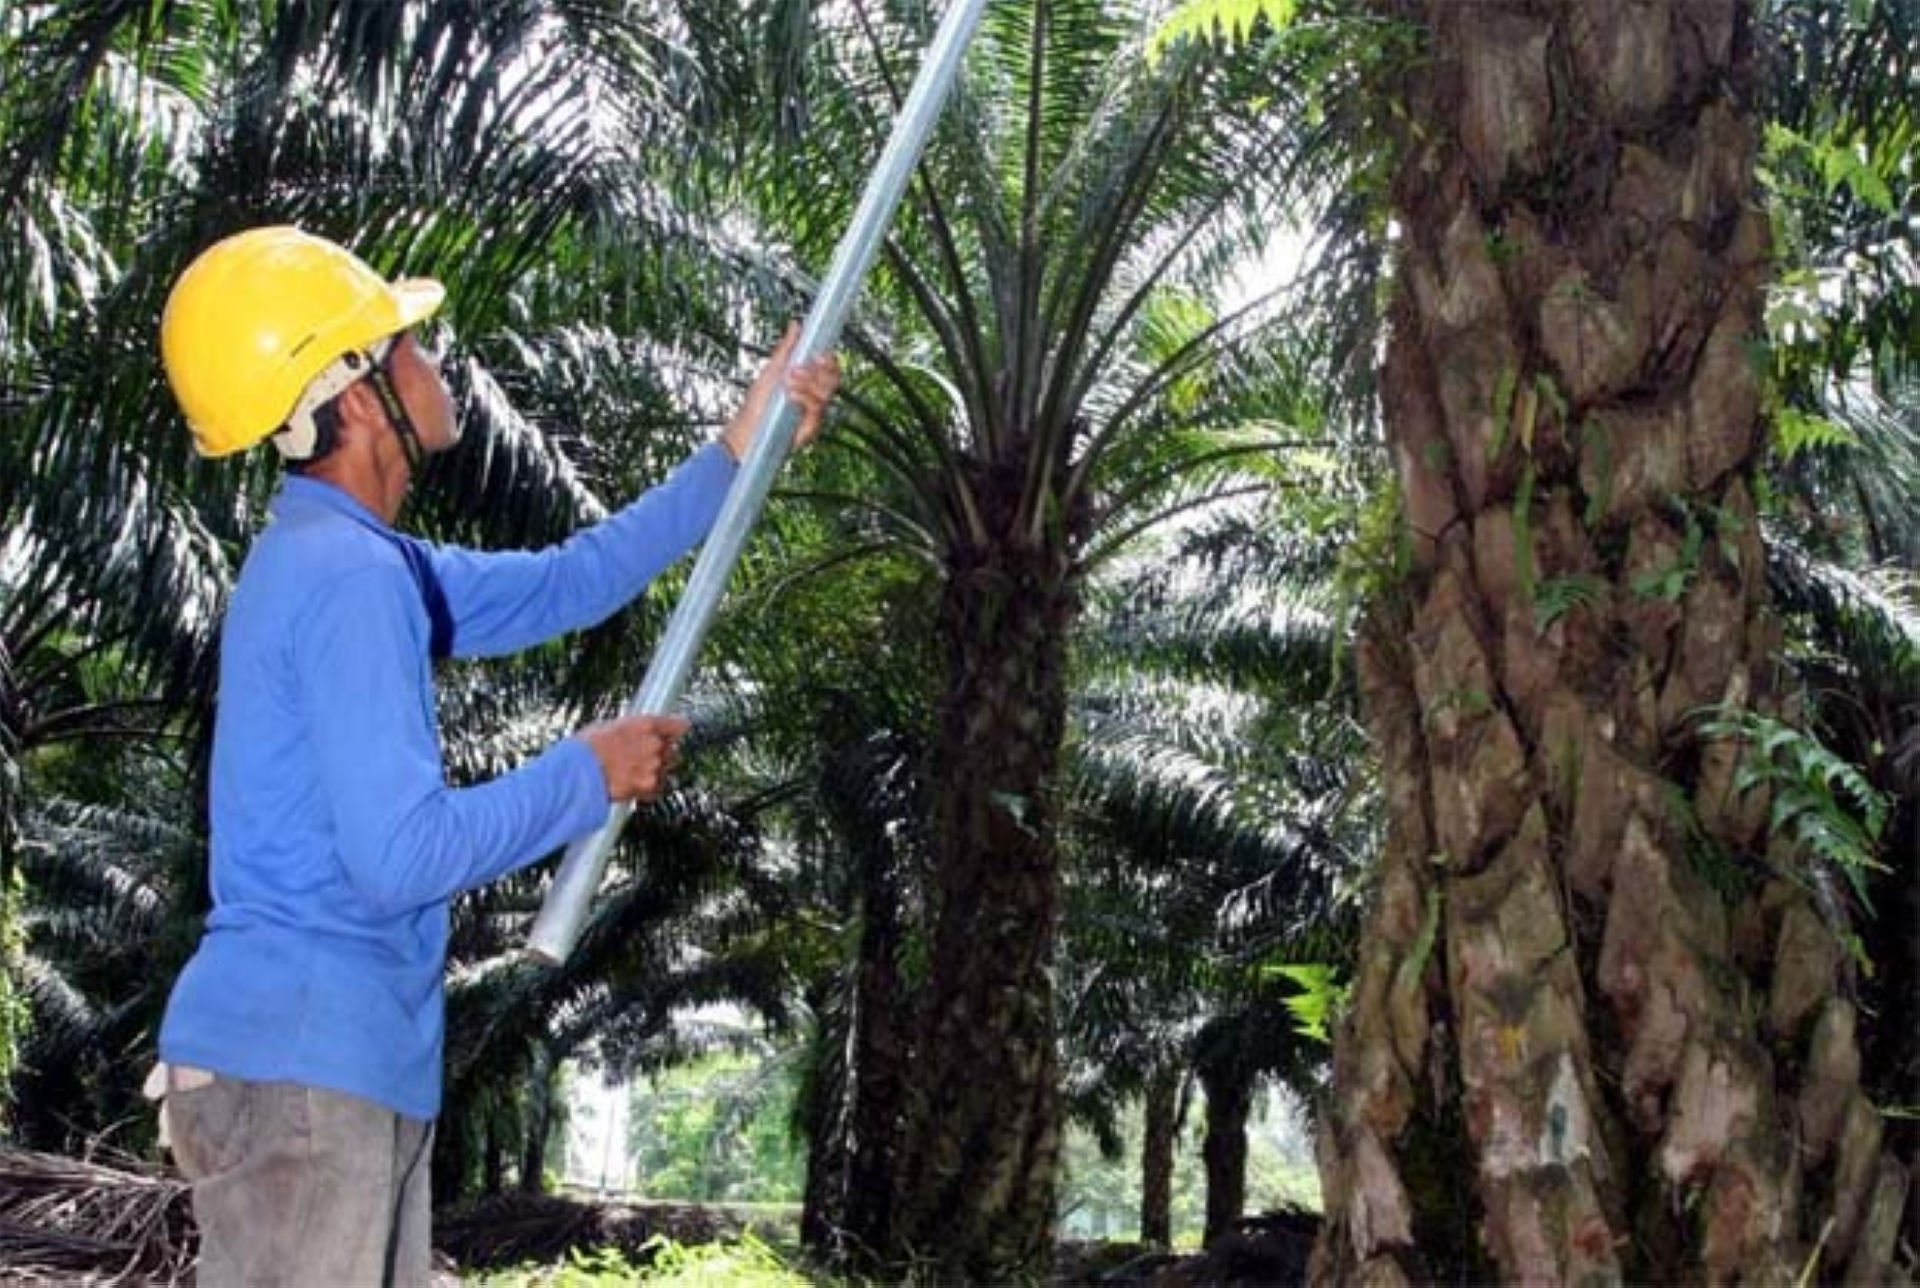 India is a key market for Sime Darby Plantation, representing about 20% of its total CPO exports last year.